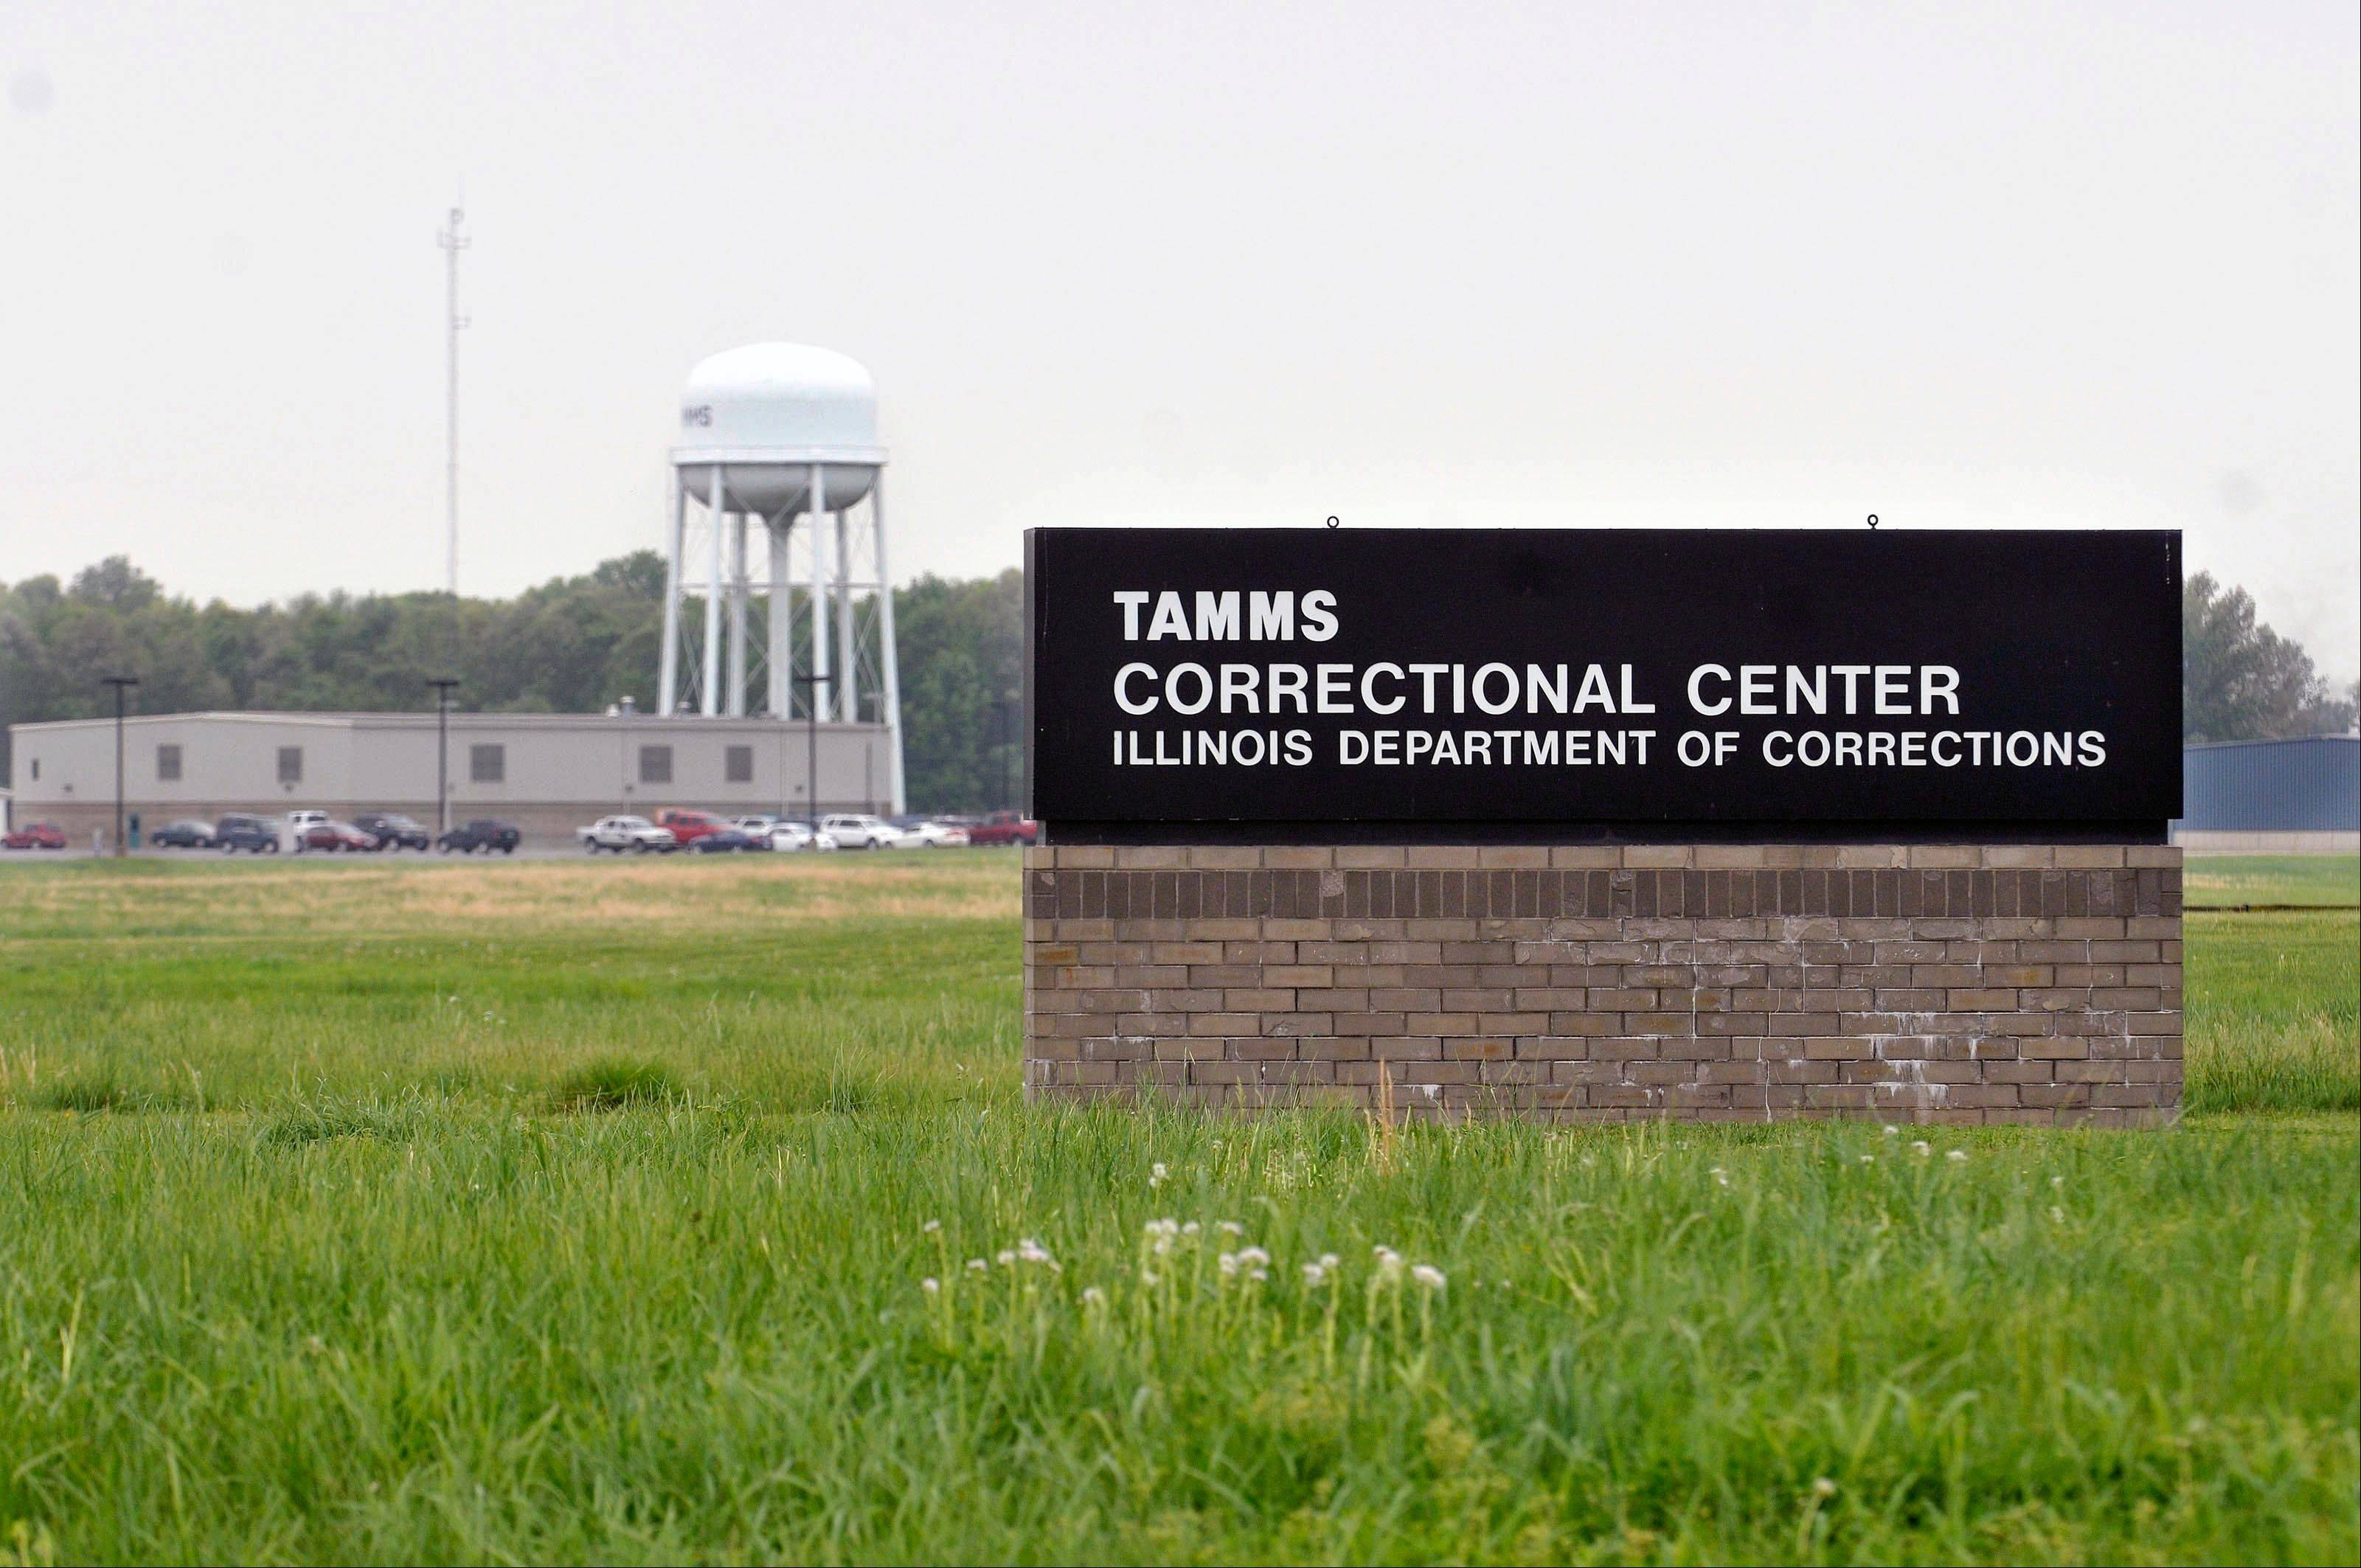 A nearly 15-year experiment with the super maximum-security prison in Tamms has ended. Shuttering Tamms is part of Gov. Pat Quinn's plan to save money.